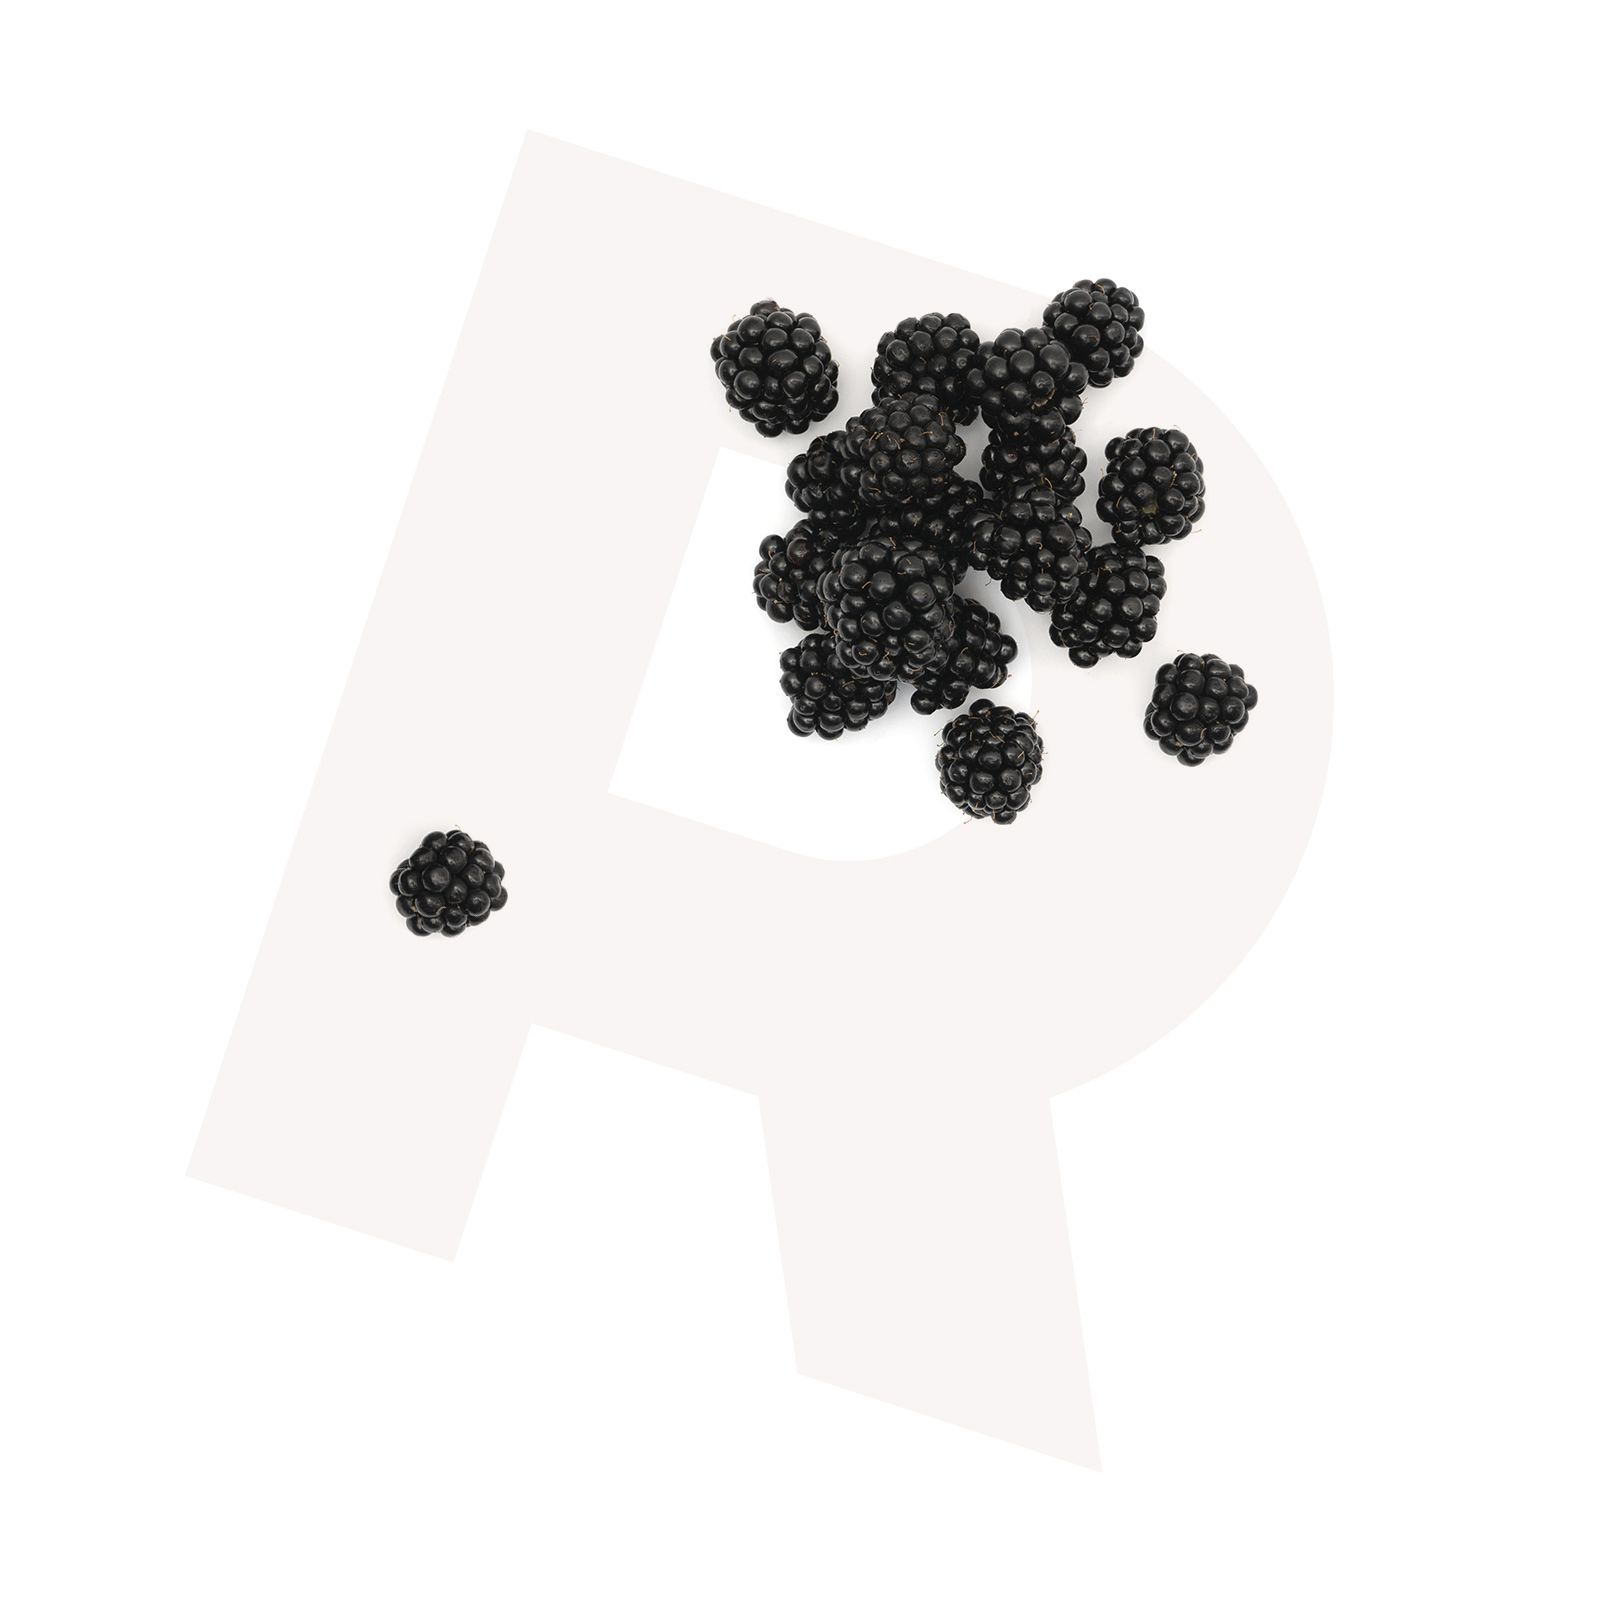 Fruit_blackberries